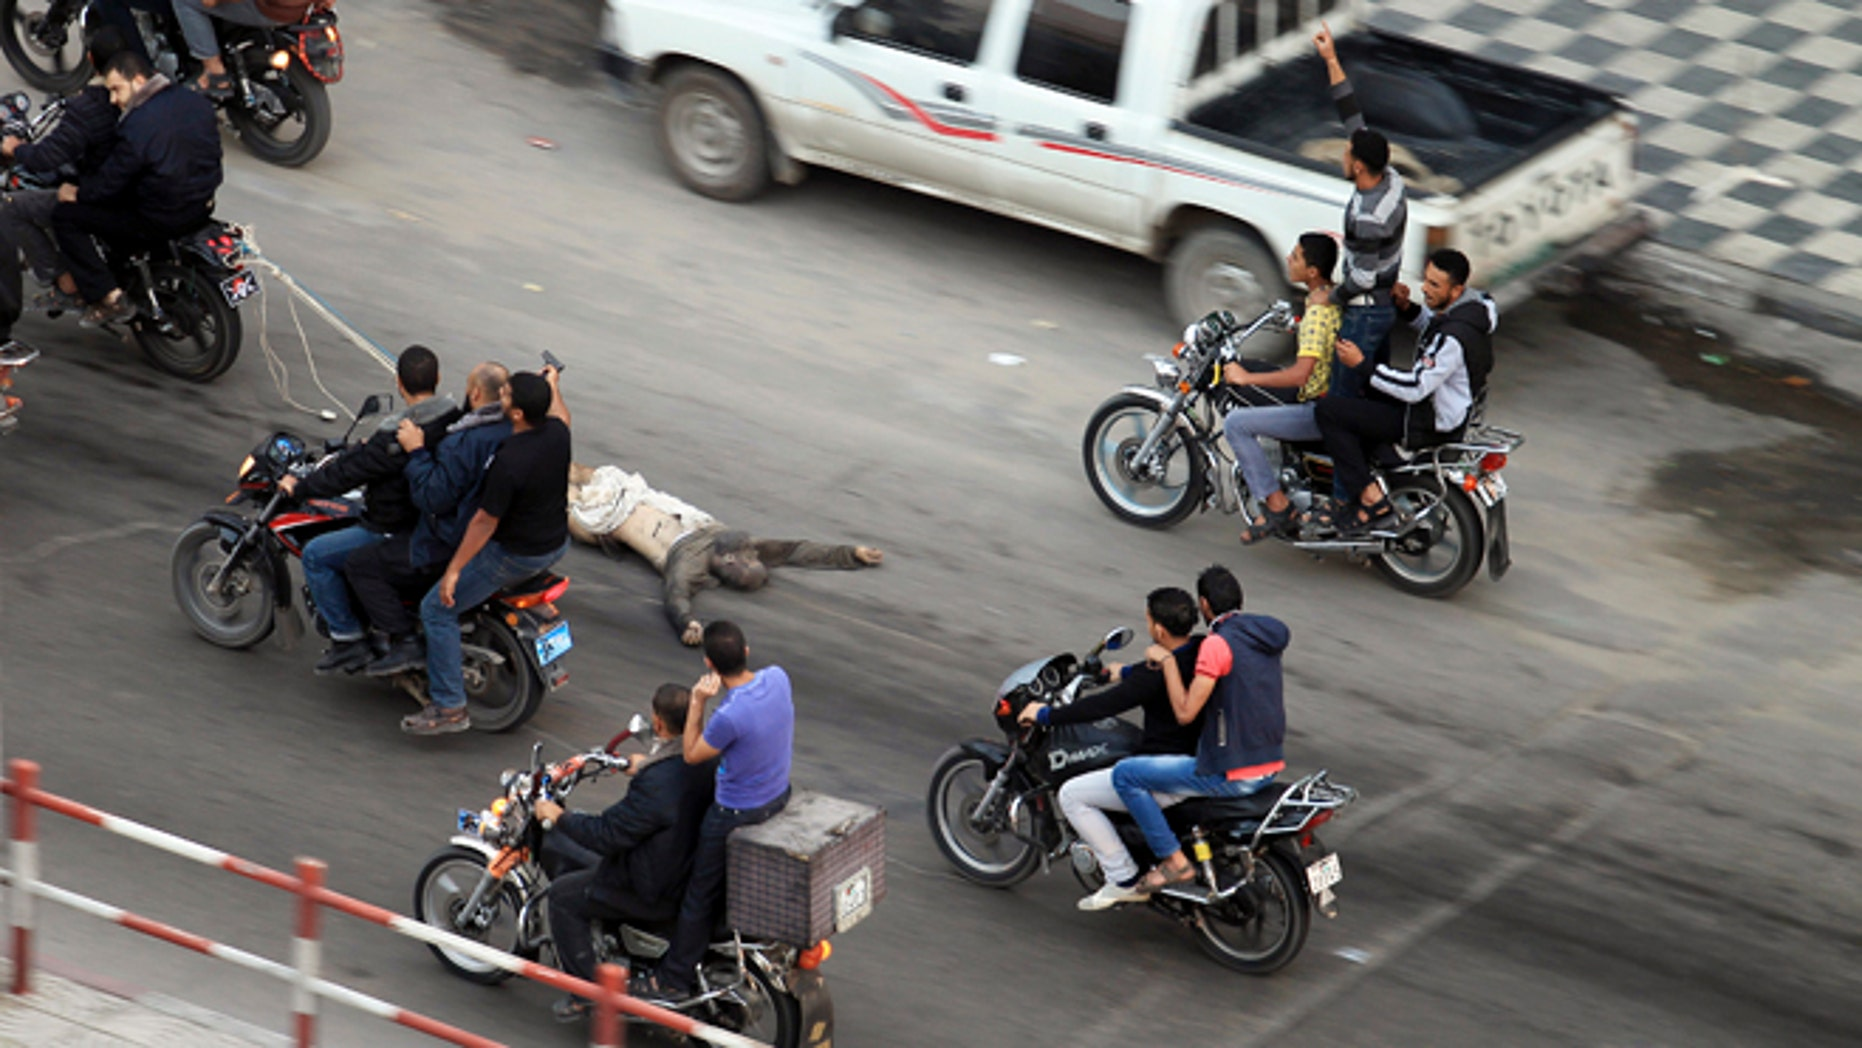 Nov. 20, 2012: Palestinian gunmen ride motorcycles in Gaza City as they drag  the body of a man who was suspected of working for Israel.